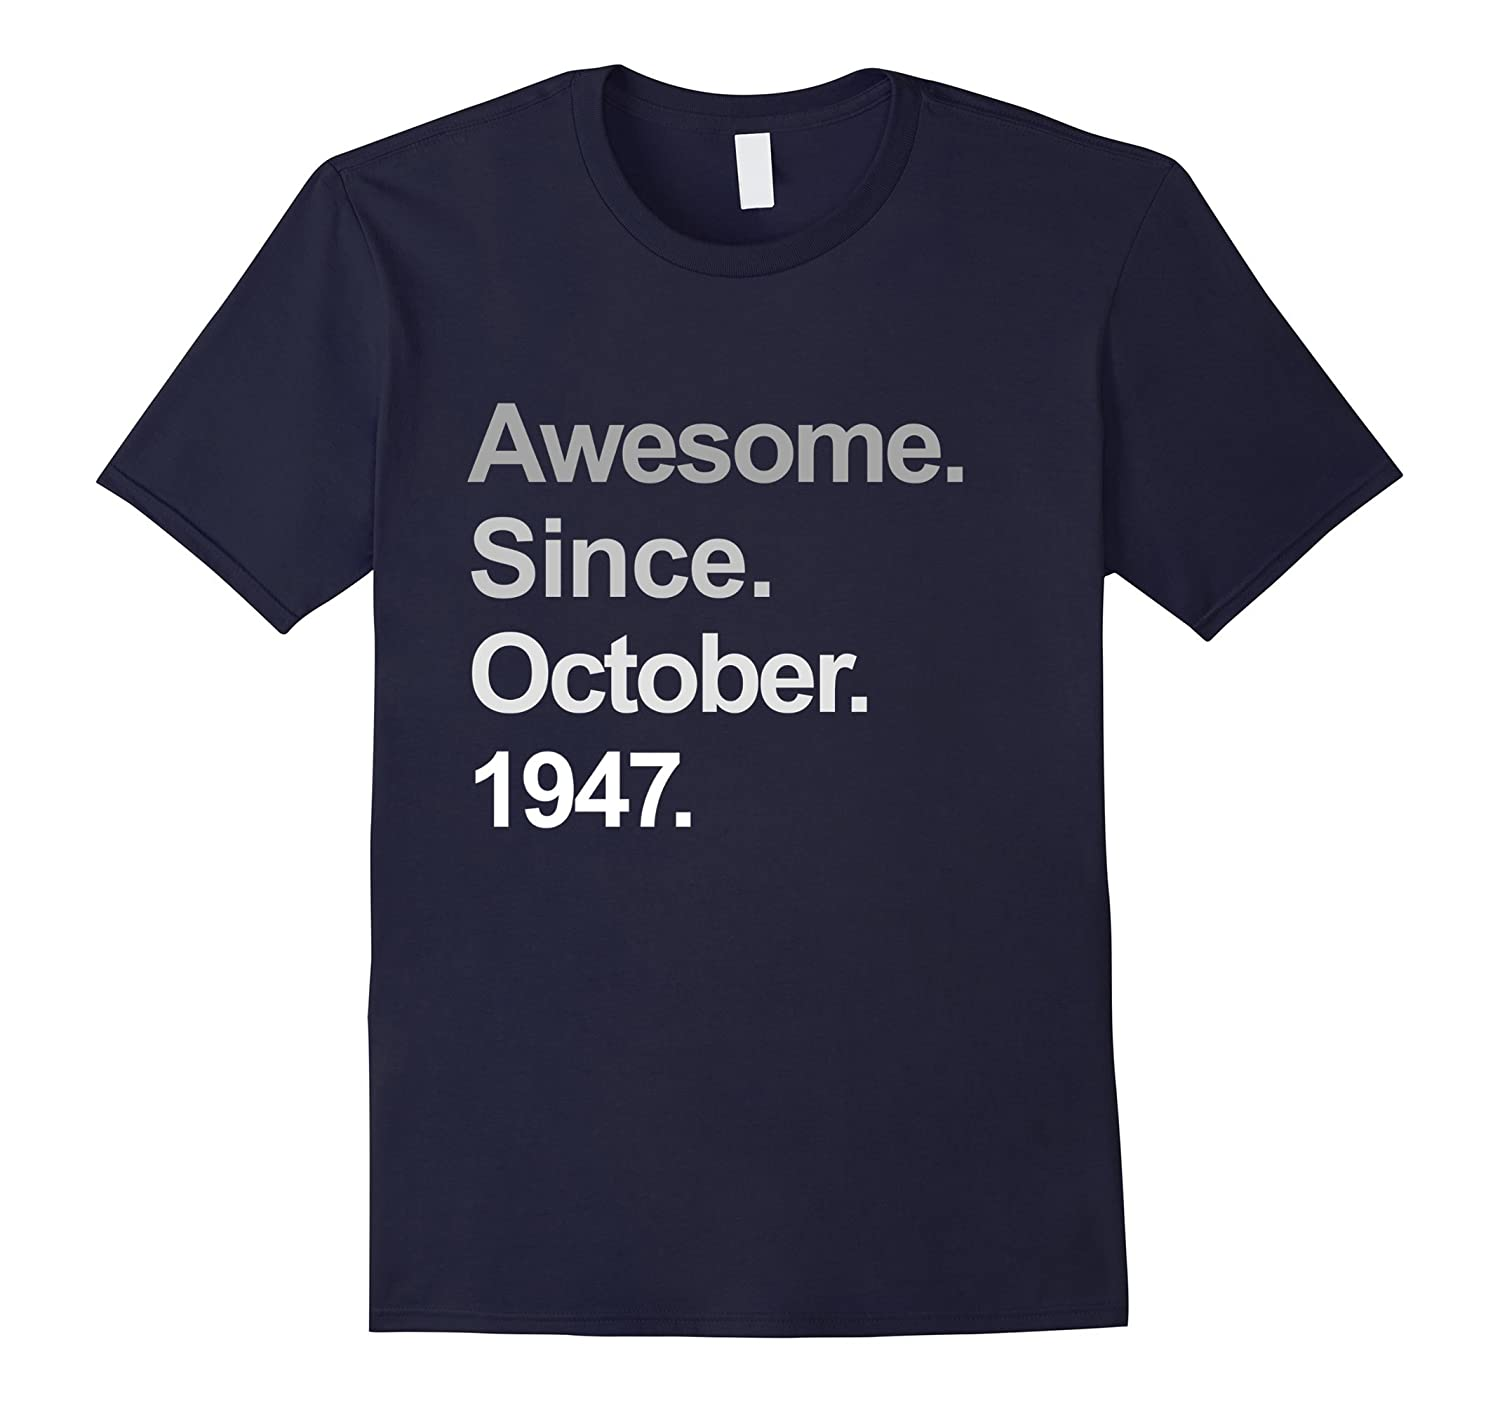 Awesome Since October 1947 Shirt 70th Birthday Gifts TShirt-TJ